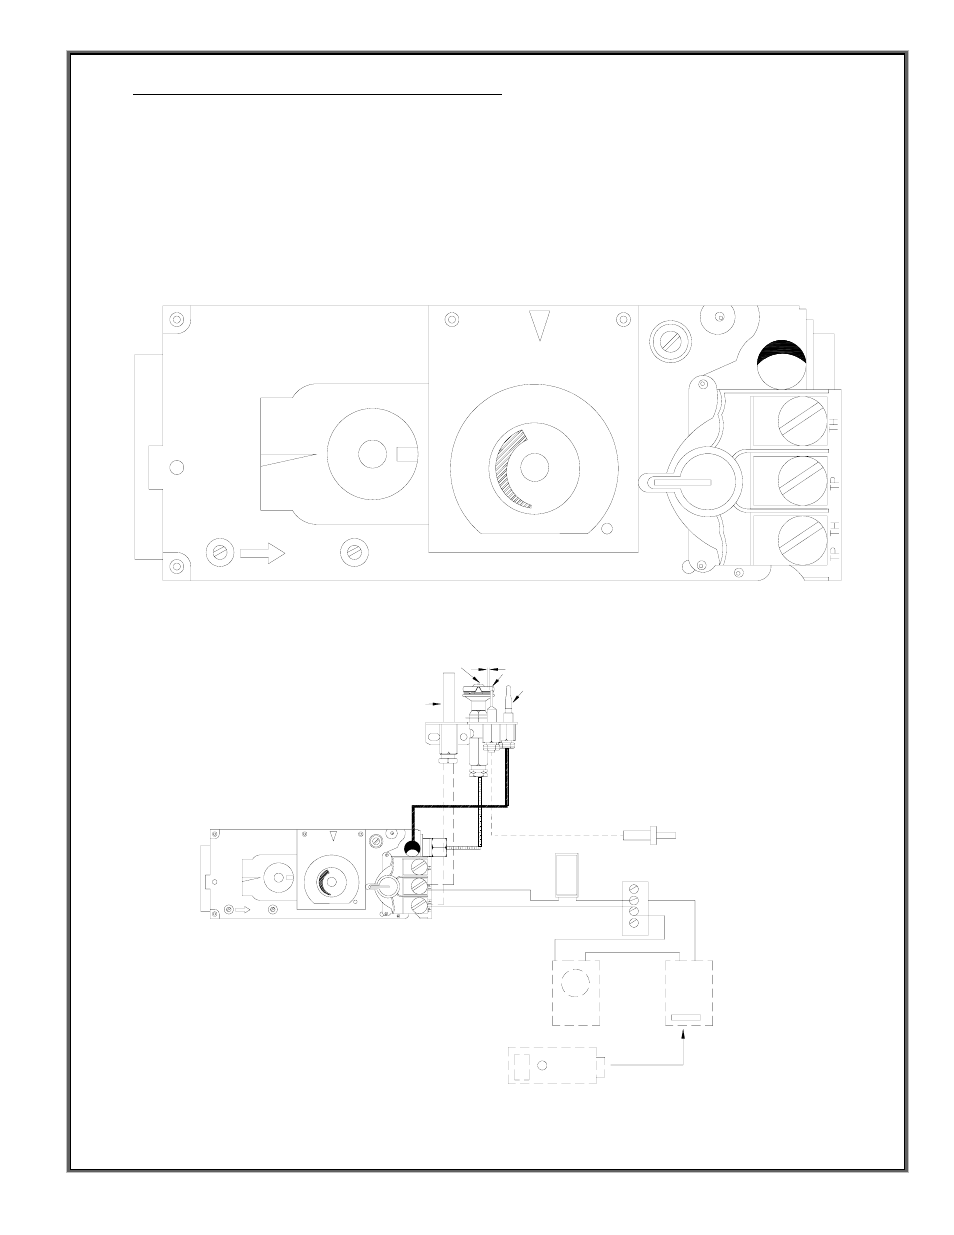 hight resolution of 1996 mazda miata fuse box diagram